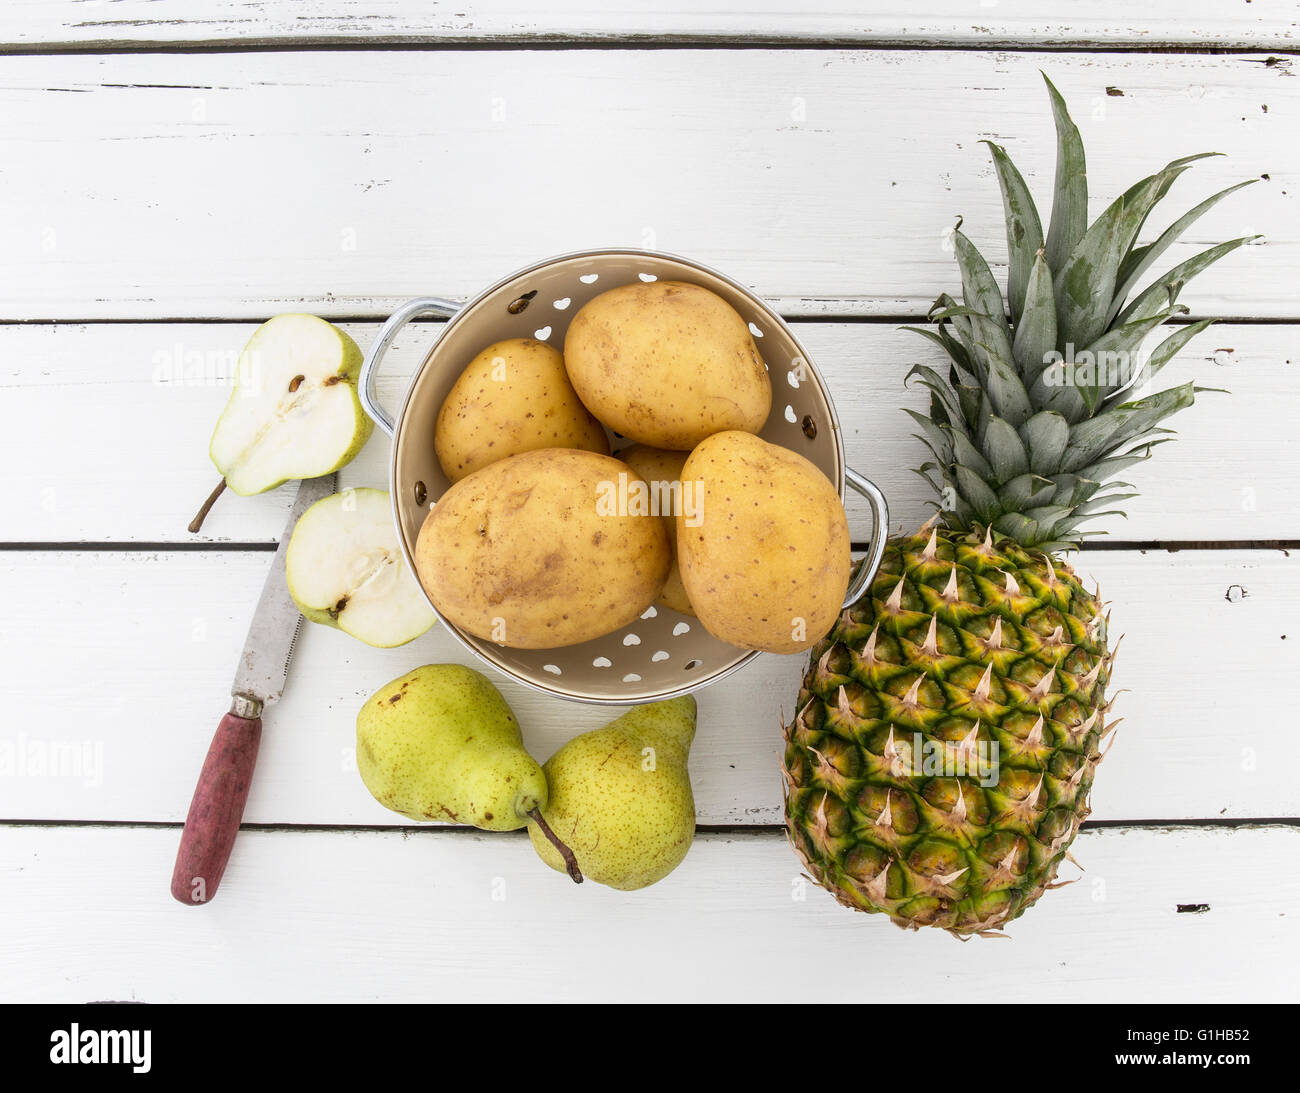 Overhead Still Life with Fruit and vegetables on wooden background - Stock Image